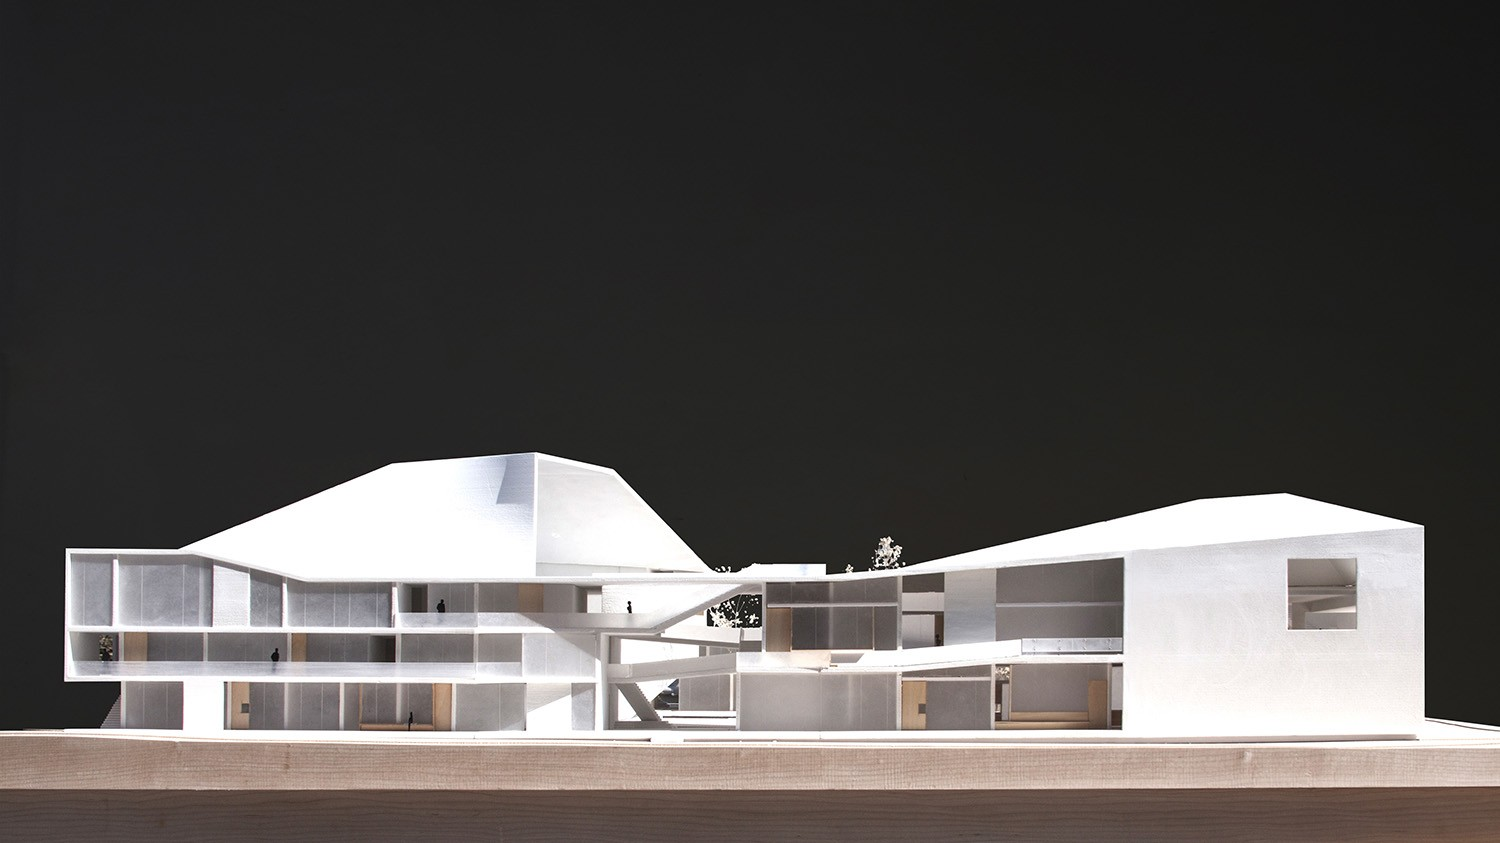 https://s3.us-east-2.amazonaws.com/steven-holl/uploads/projects/project-images/StevenHollArchitects_Bogota_IMG_6219-edit_WH.jpg